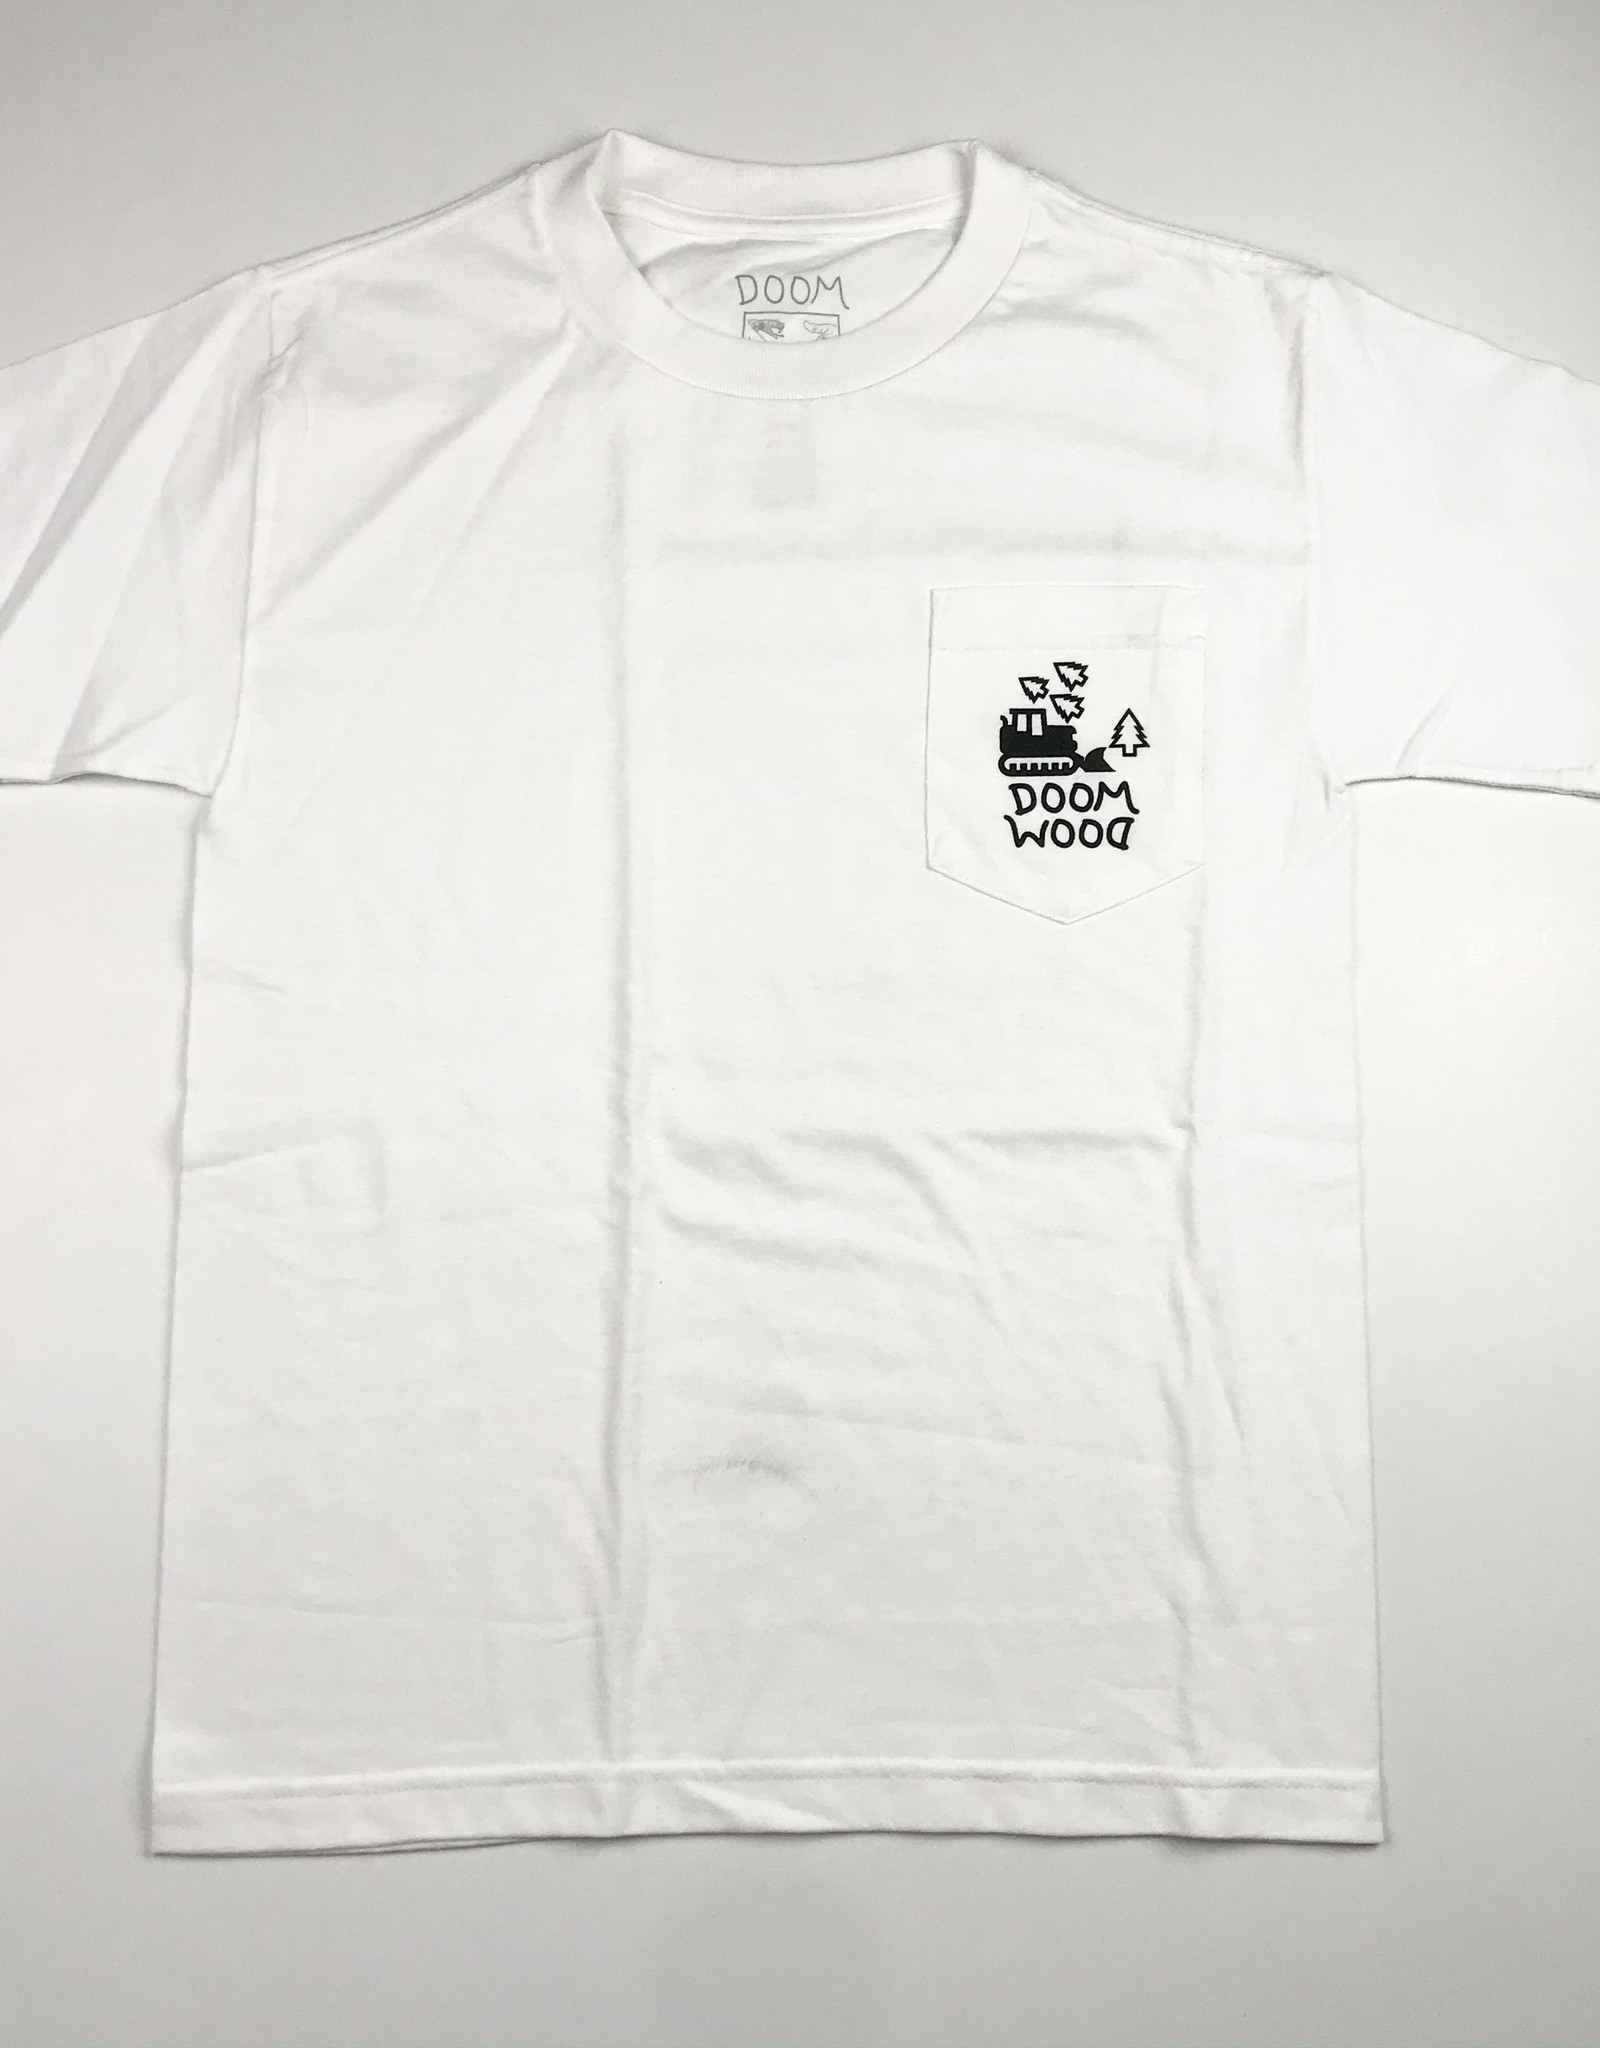 DOOM SAYERS DOOM SAYERS WOOD POCKET TEE